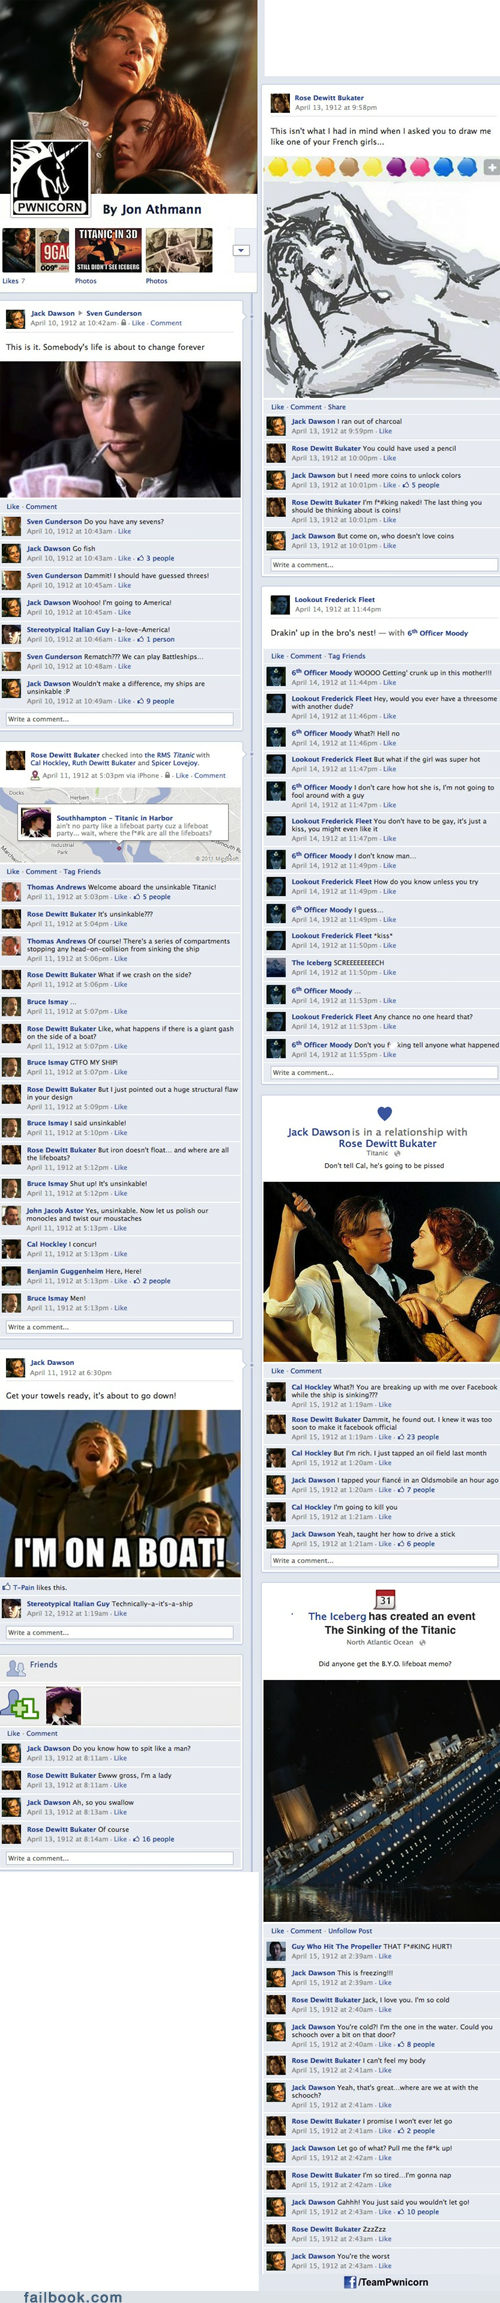 Failbook: If the Titanic Had Wi-Fi